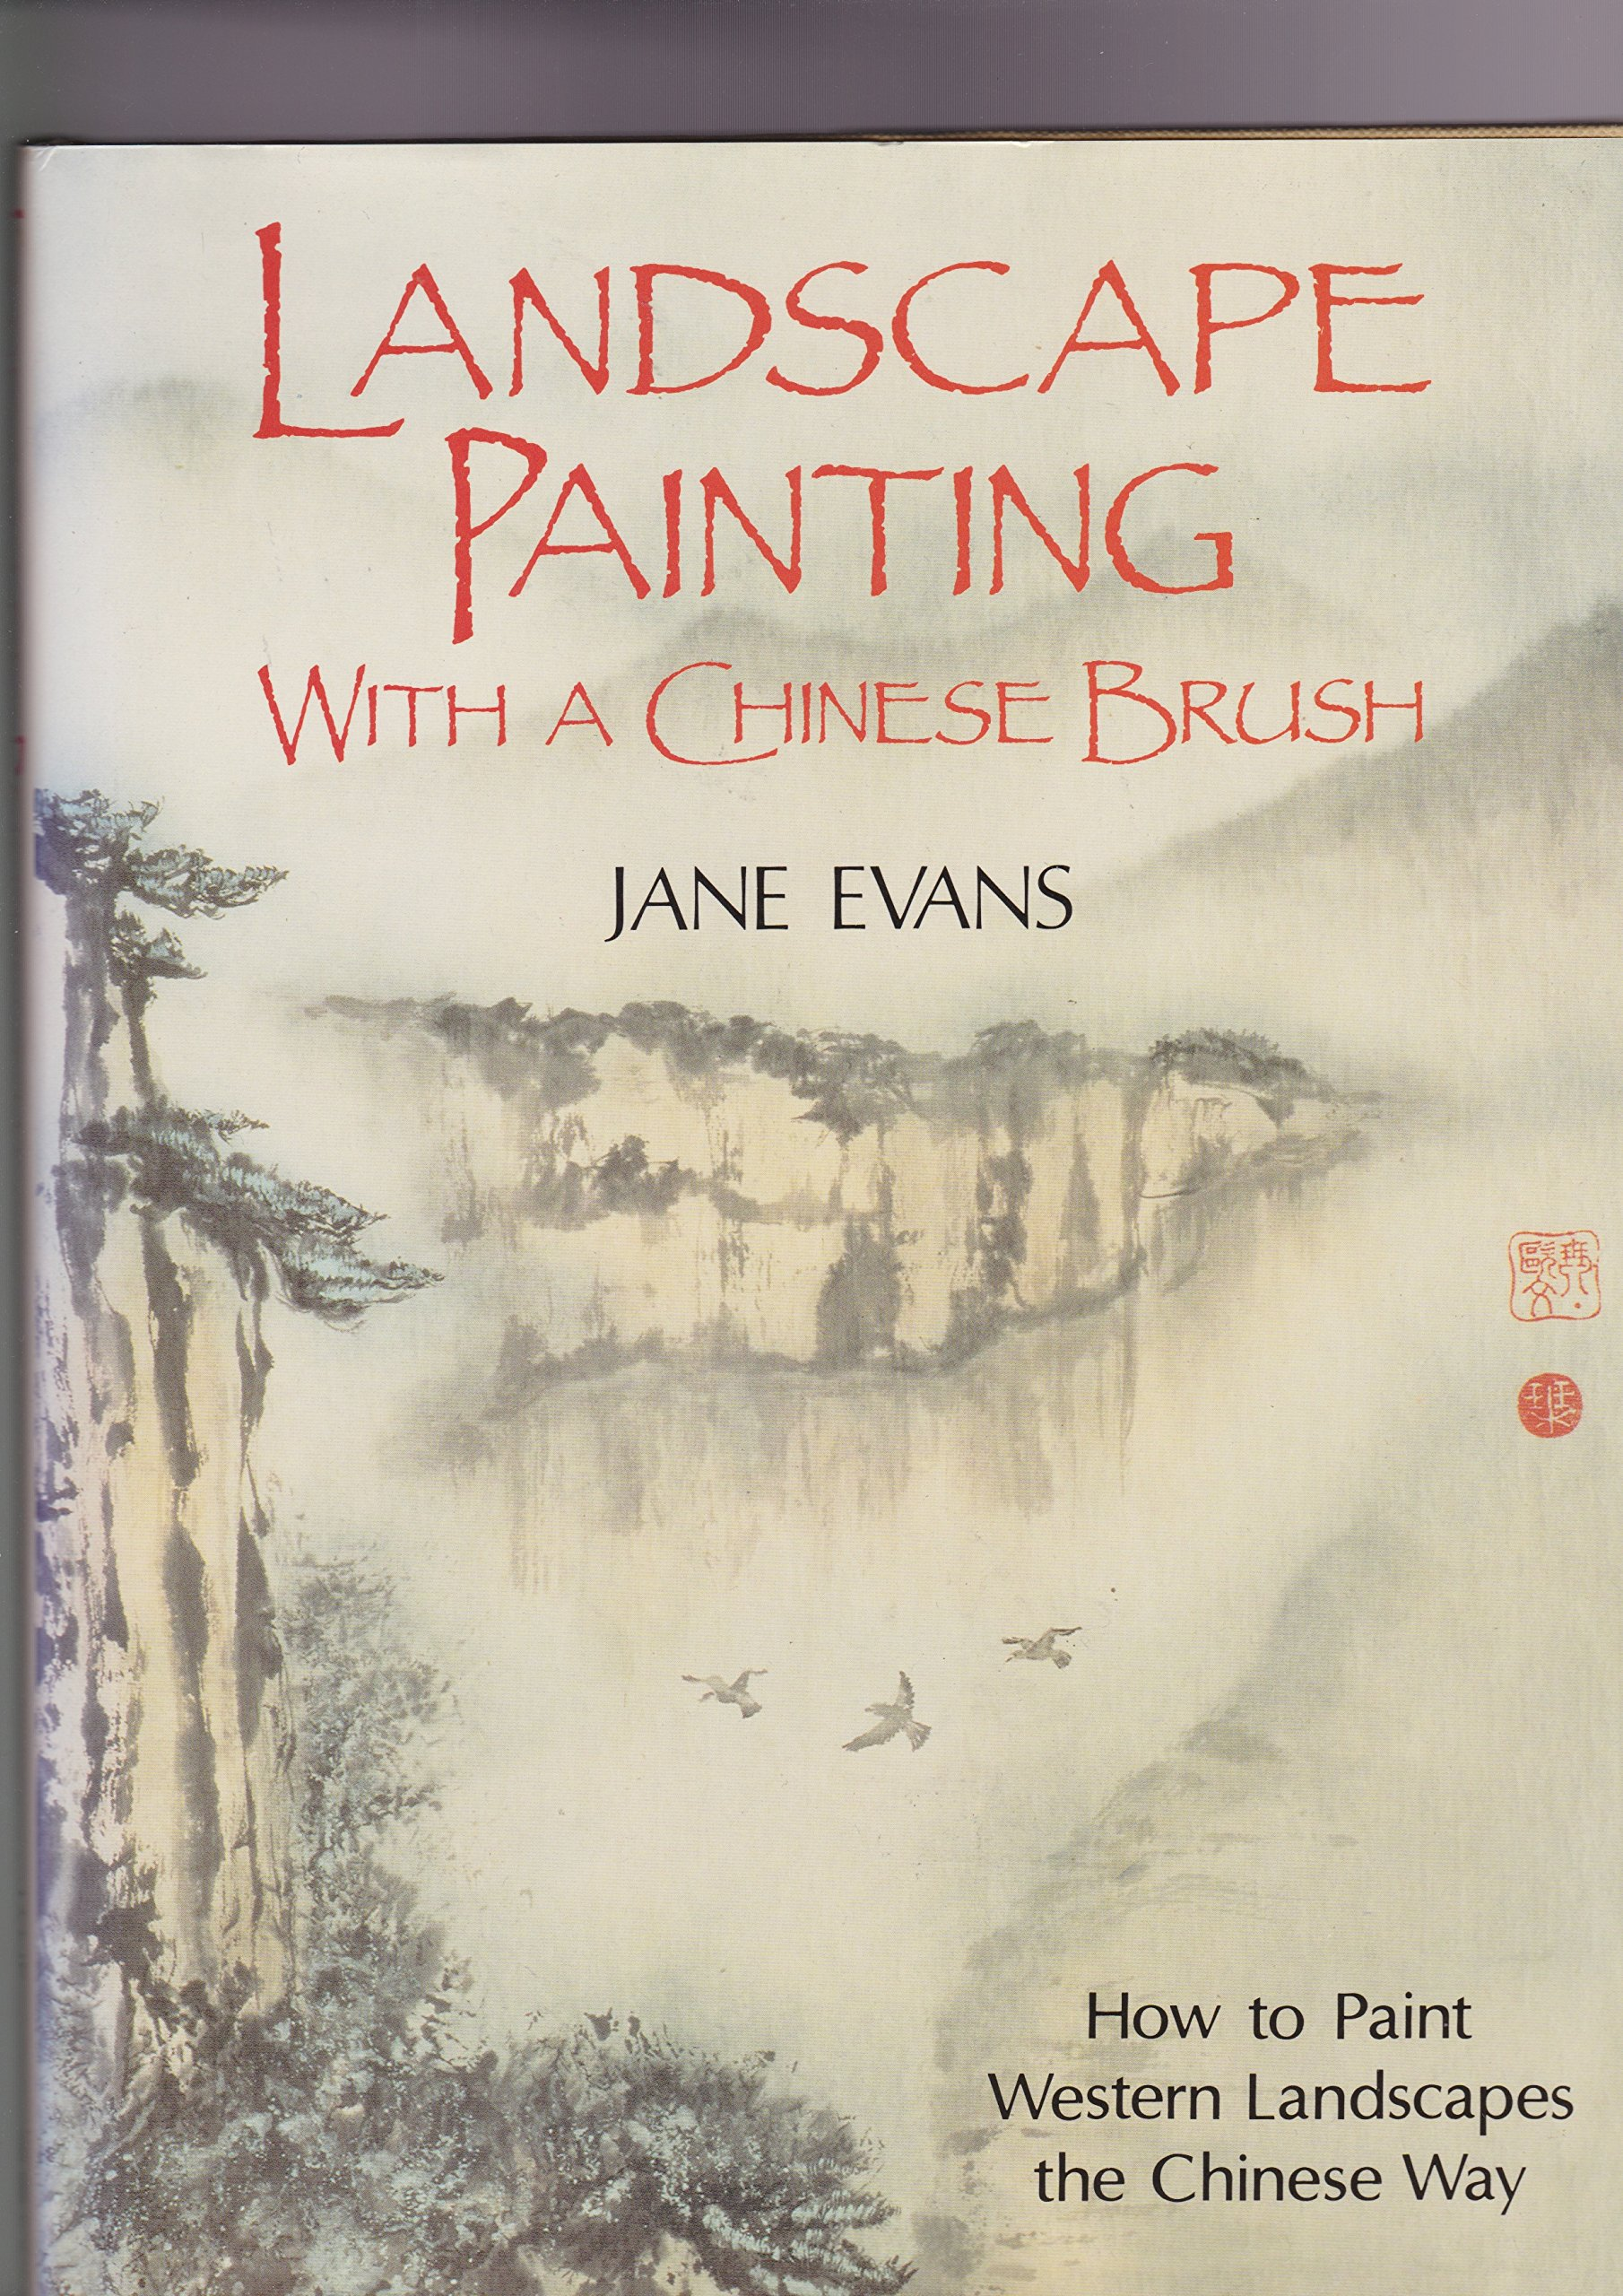 Landscape Painting with a Chinese Brush: how to paint Western Landscapes the  Chinese Way: Amazon.co.uk: Jane Evans: Books